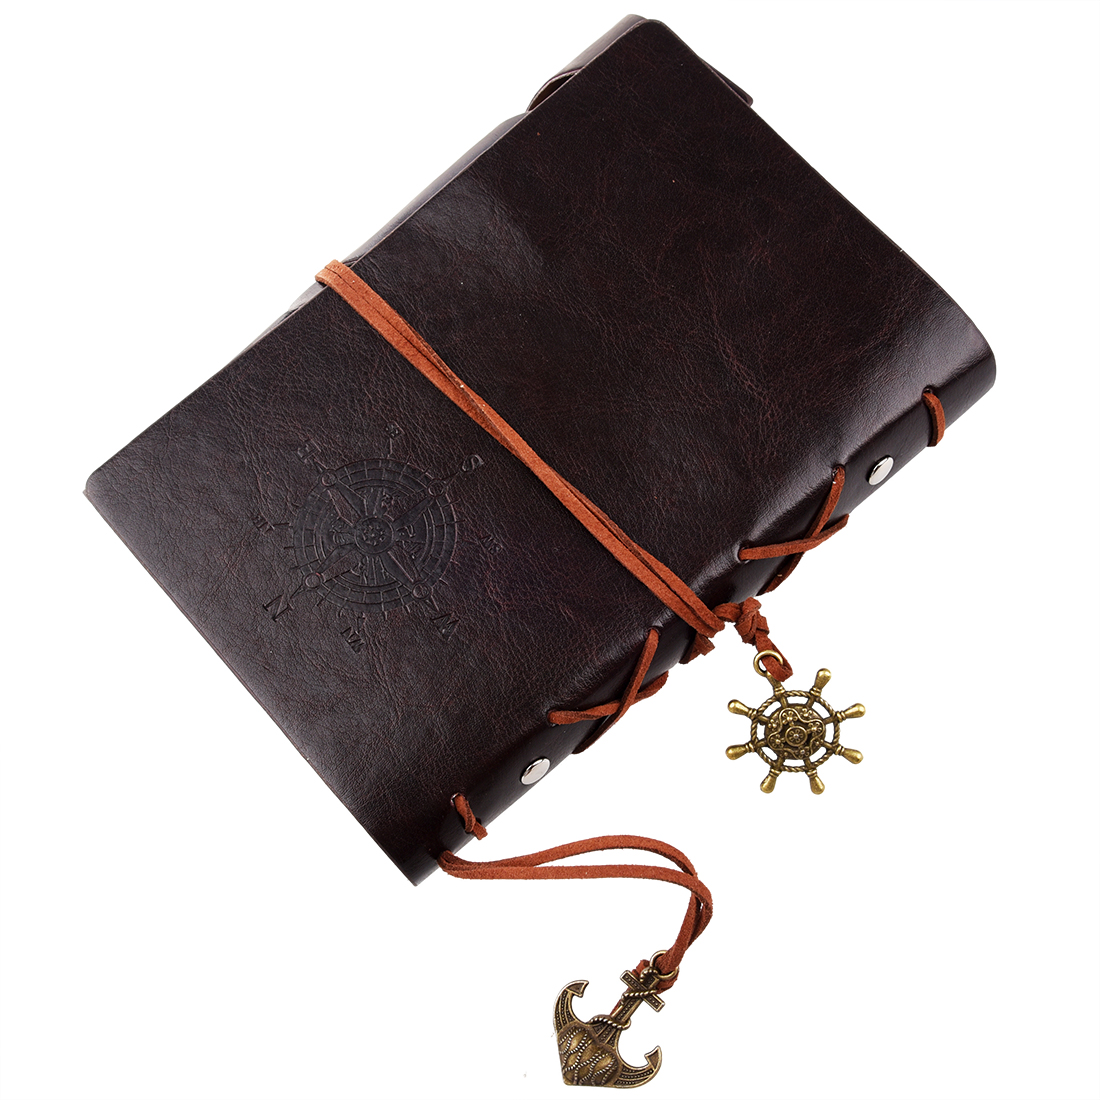 Spiral NoteBook Newest Diary Book Vintage Pirate Anchors PU leather Note Book Gift Traveler Journal (Dark brown 18.5X13cm)